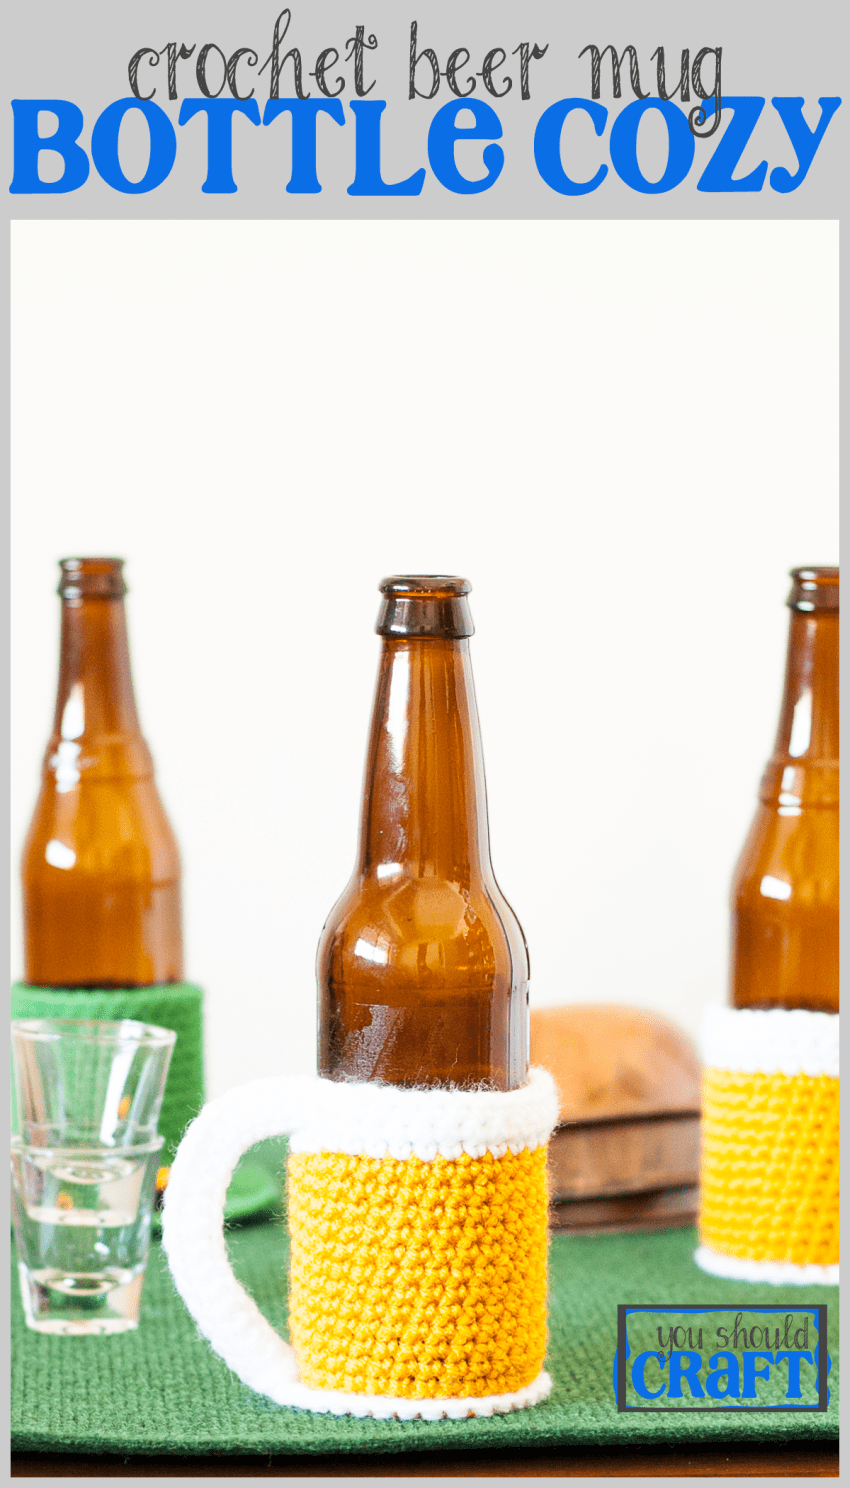 Beer Mug Bottle Cozy - Free Crochet Pattern | Tejido